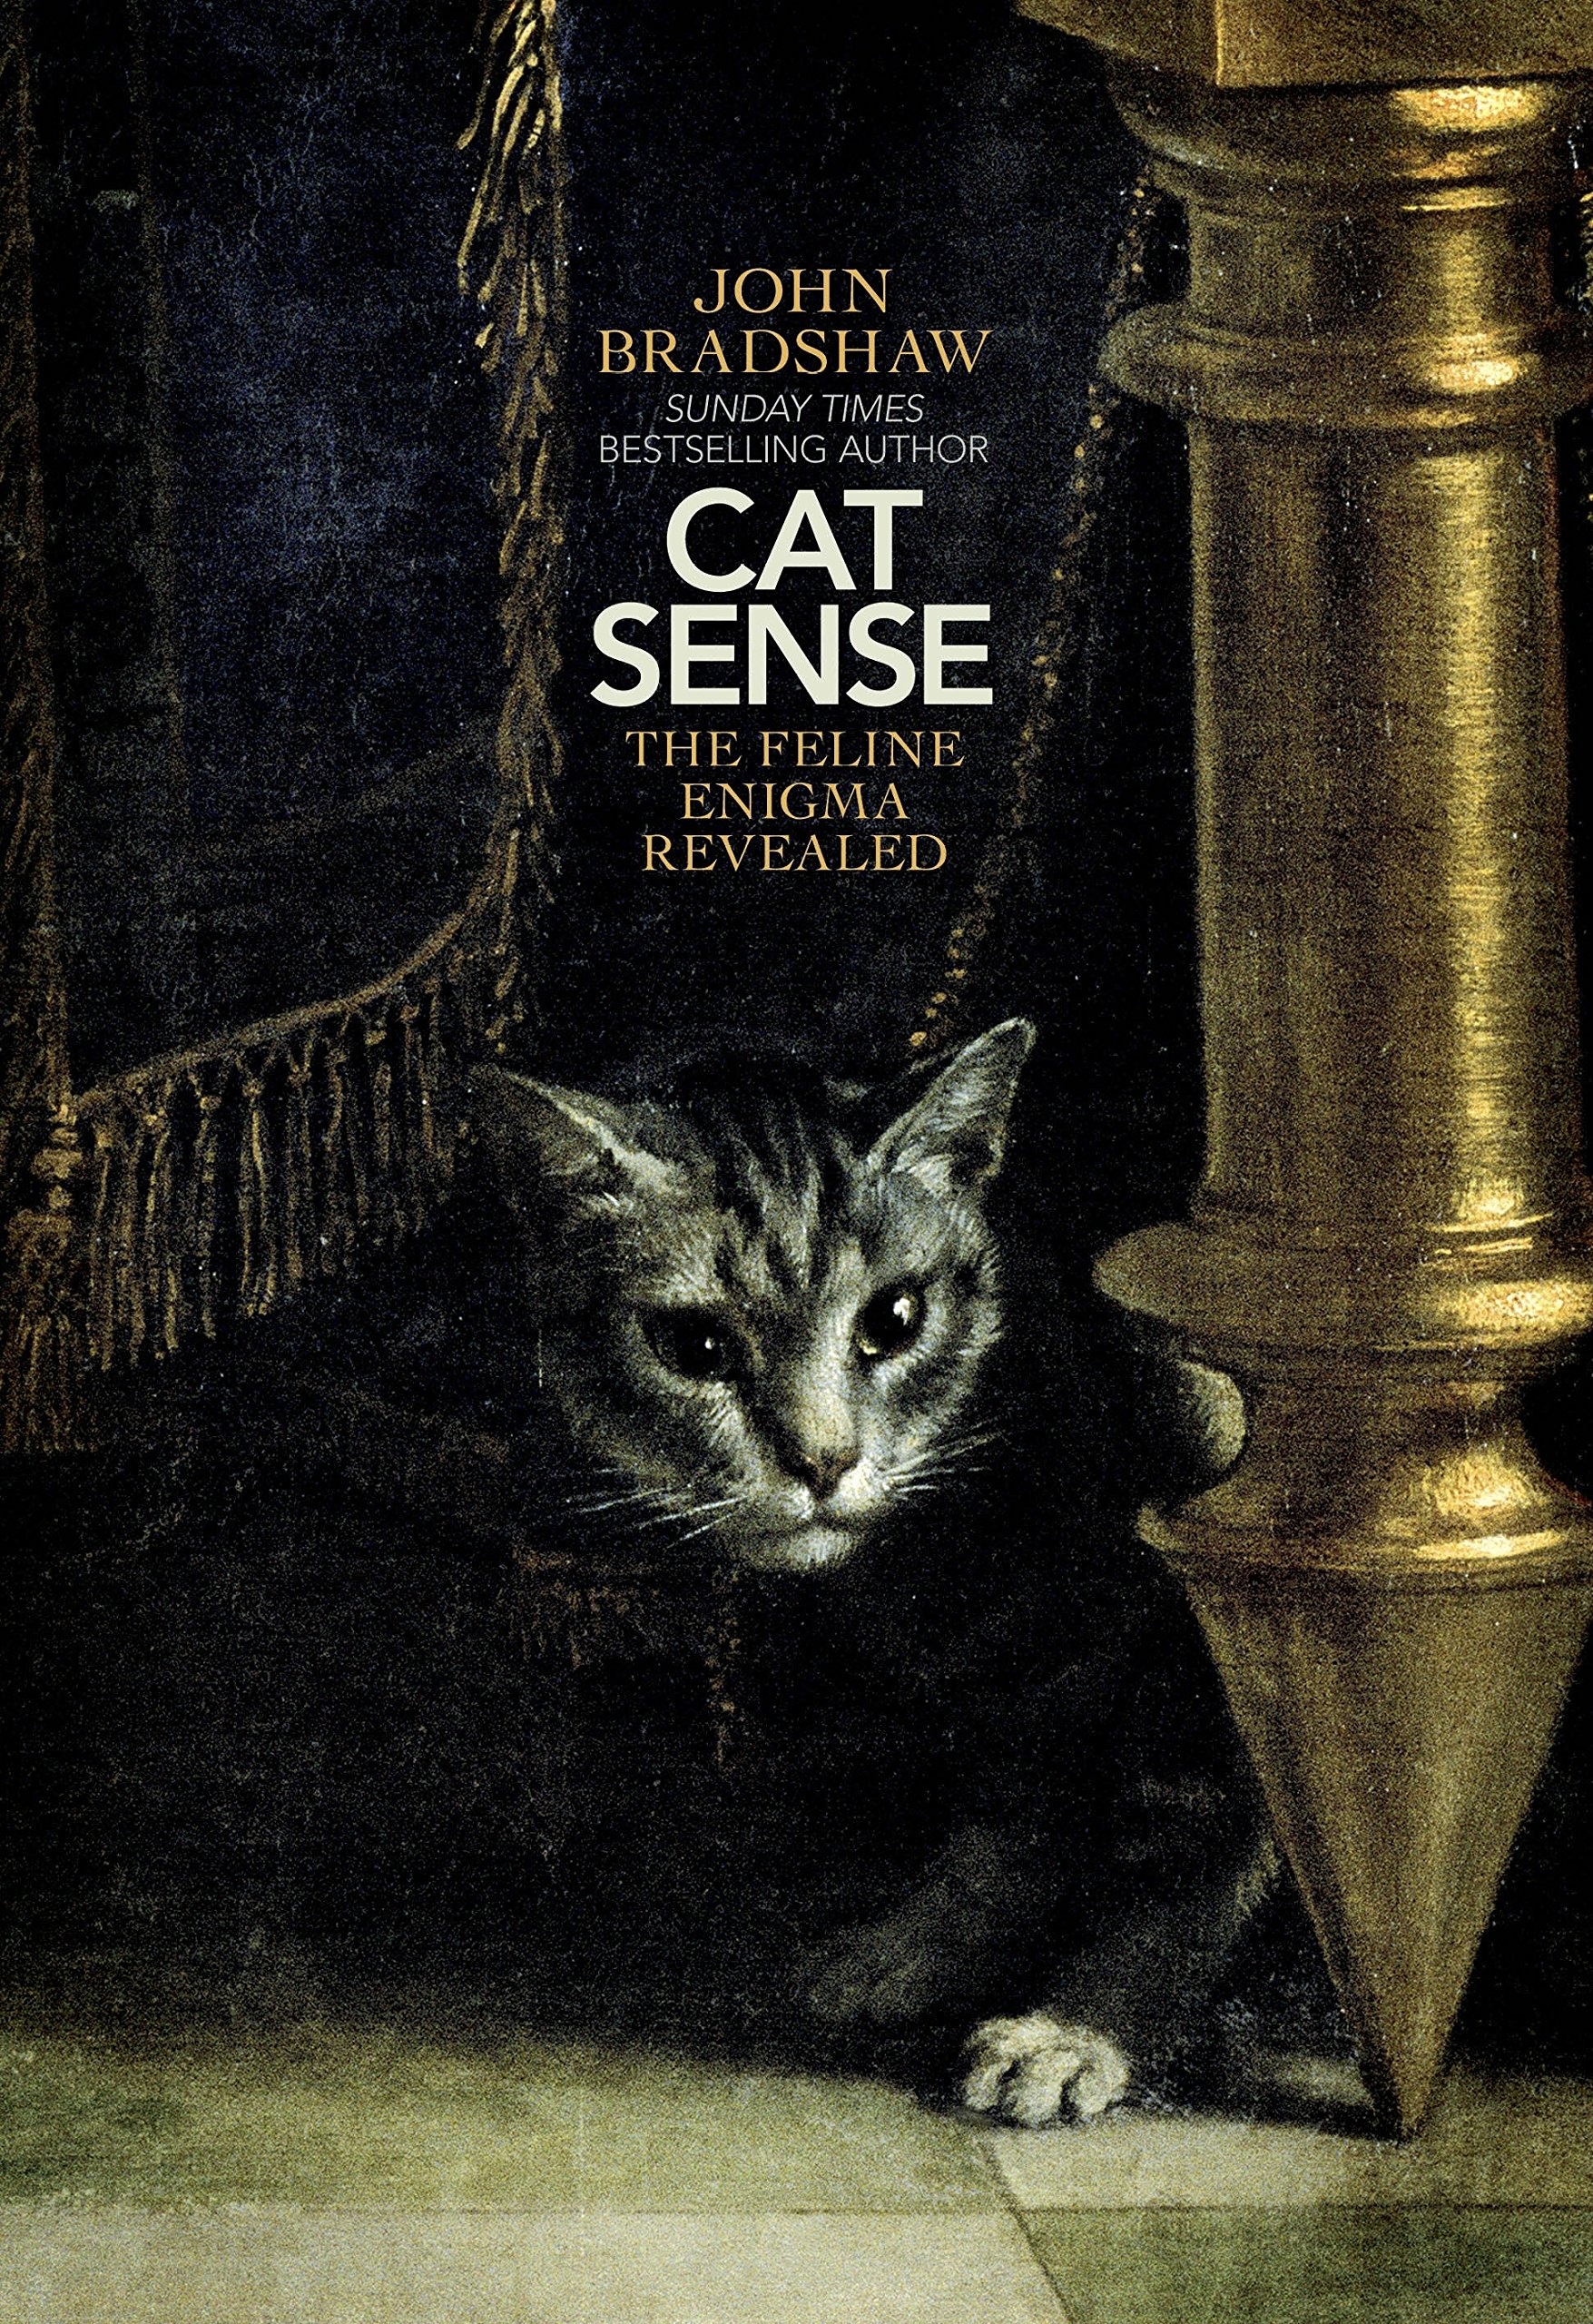 Cat Sense: The Feline Enigma Revealed: Amazon.es: John Bradshaw: Libros en idiomas extranjeros